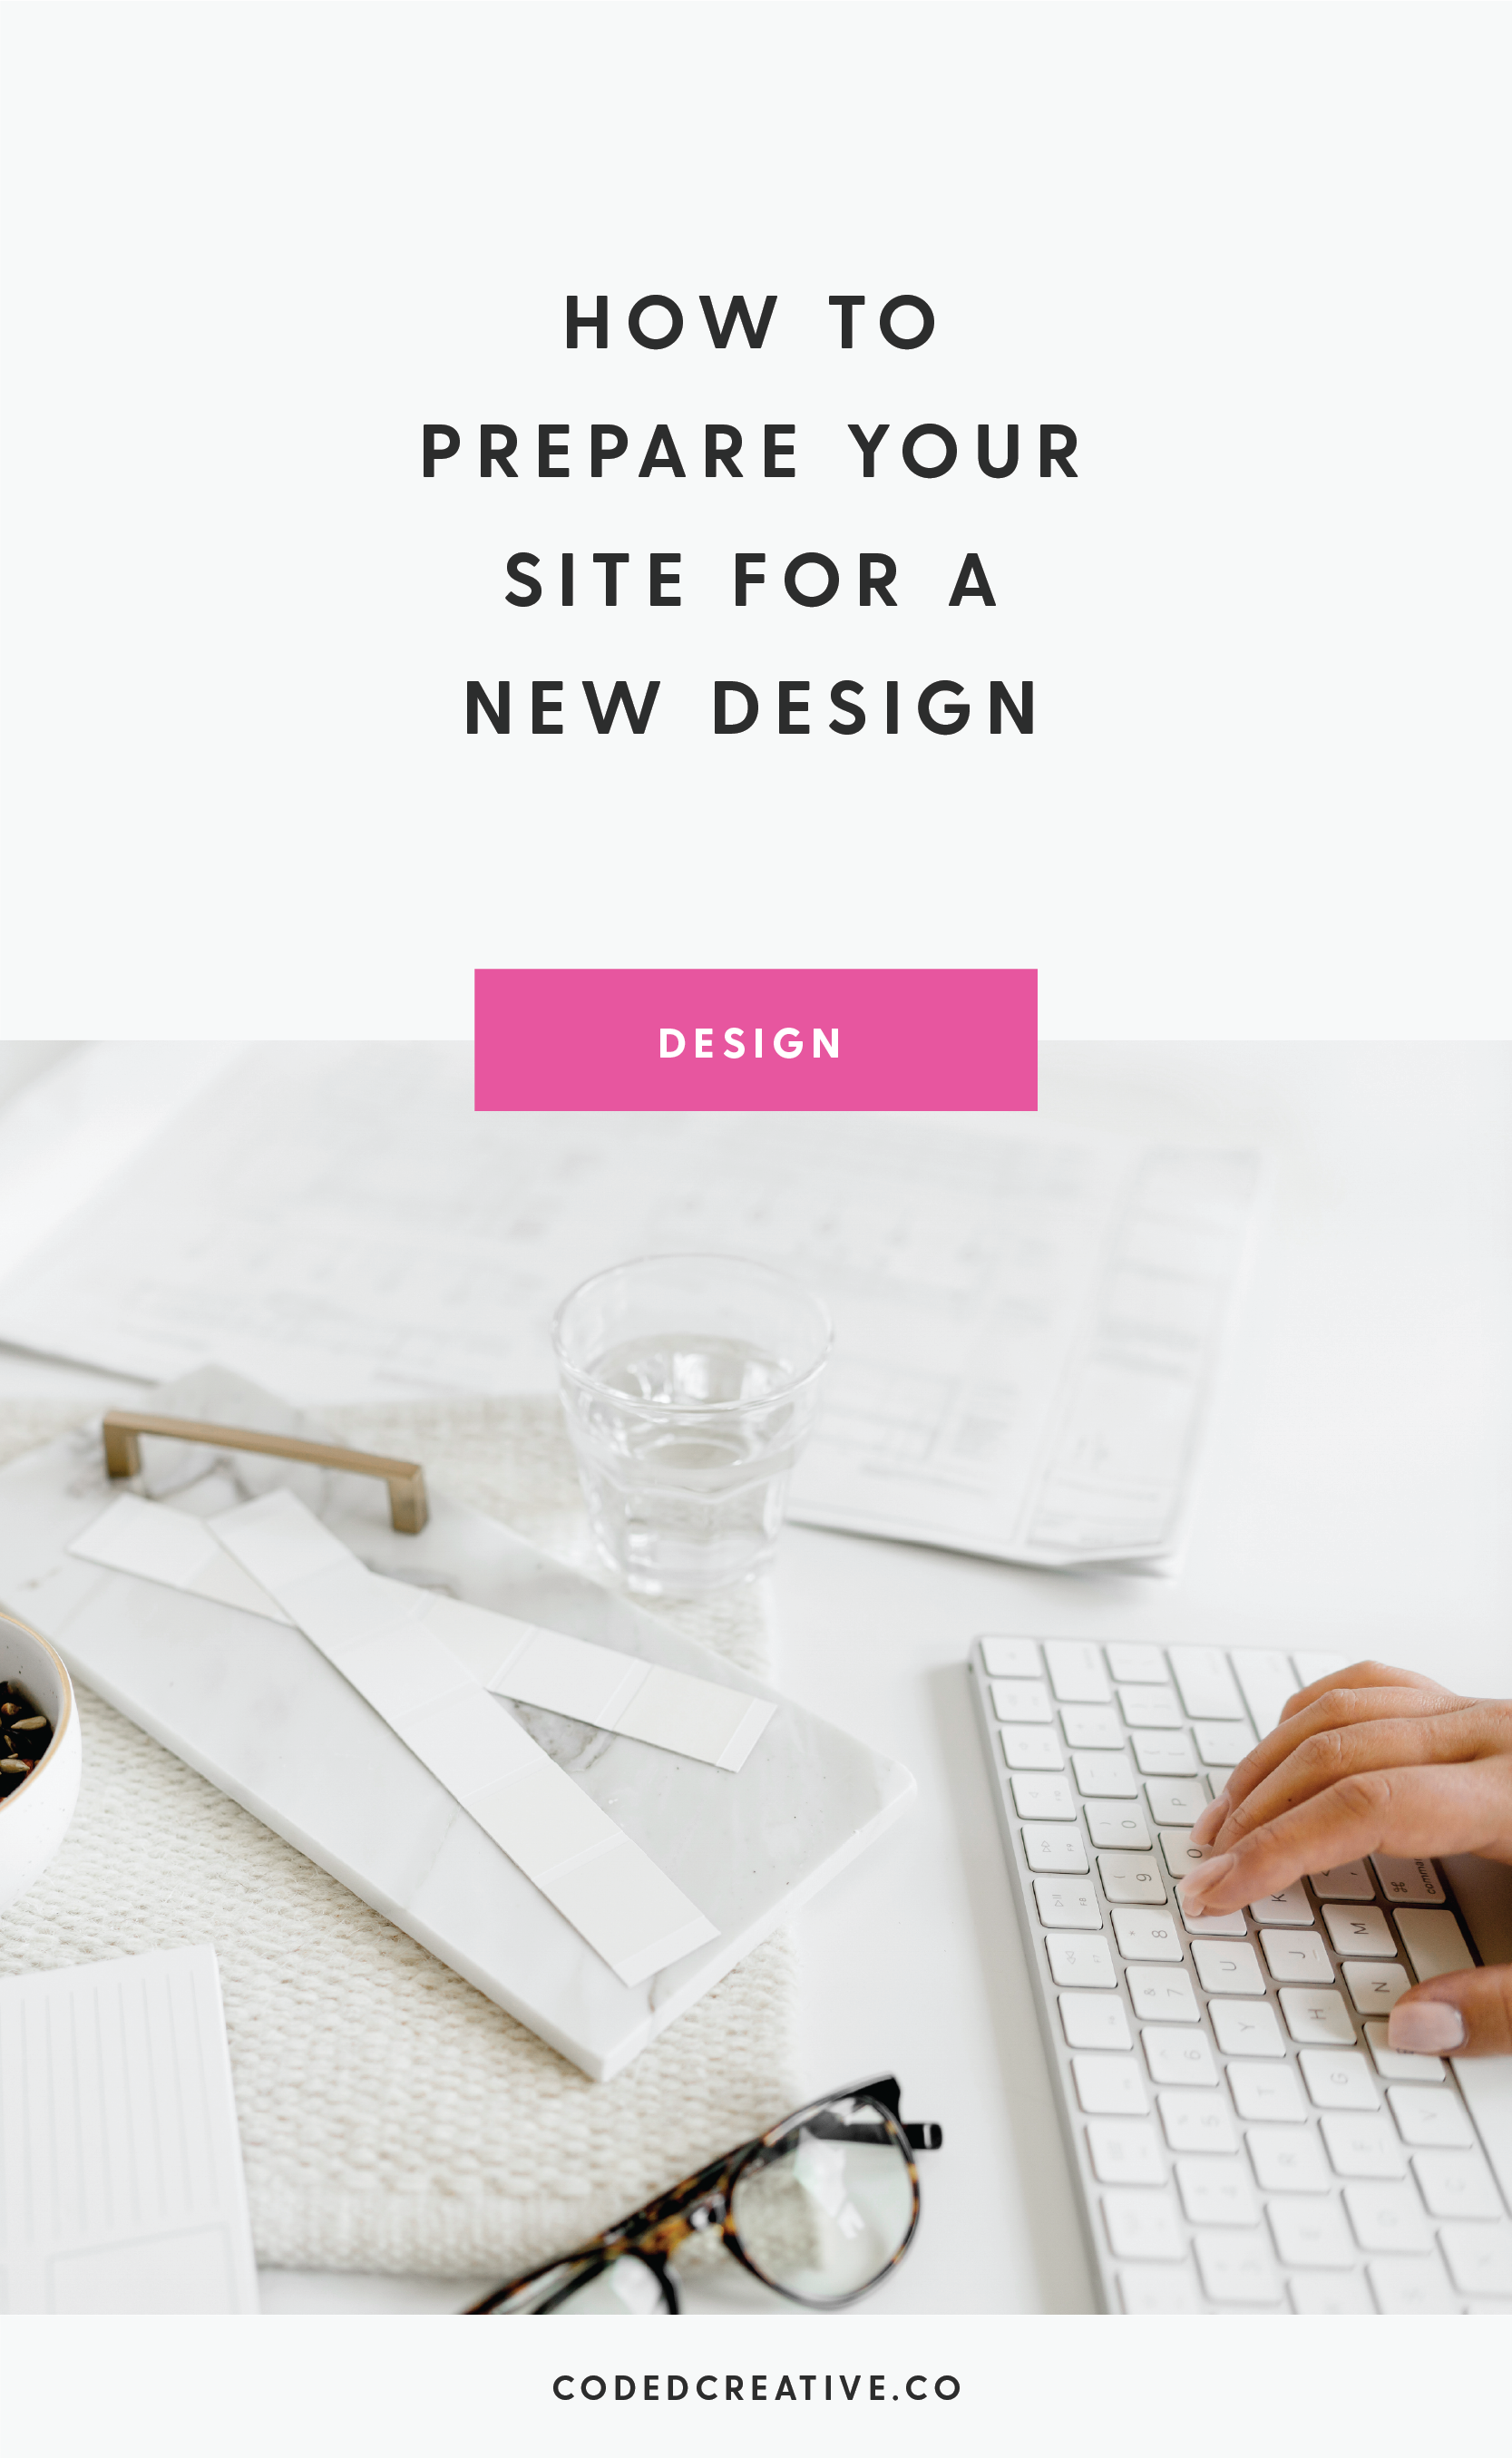 How to Prepare Your Site for a New Design